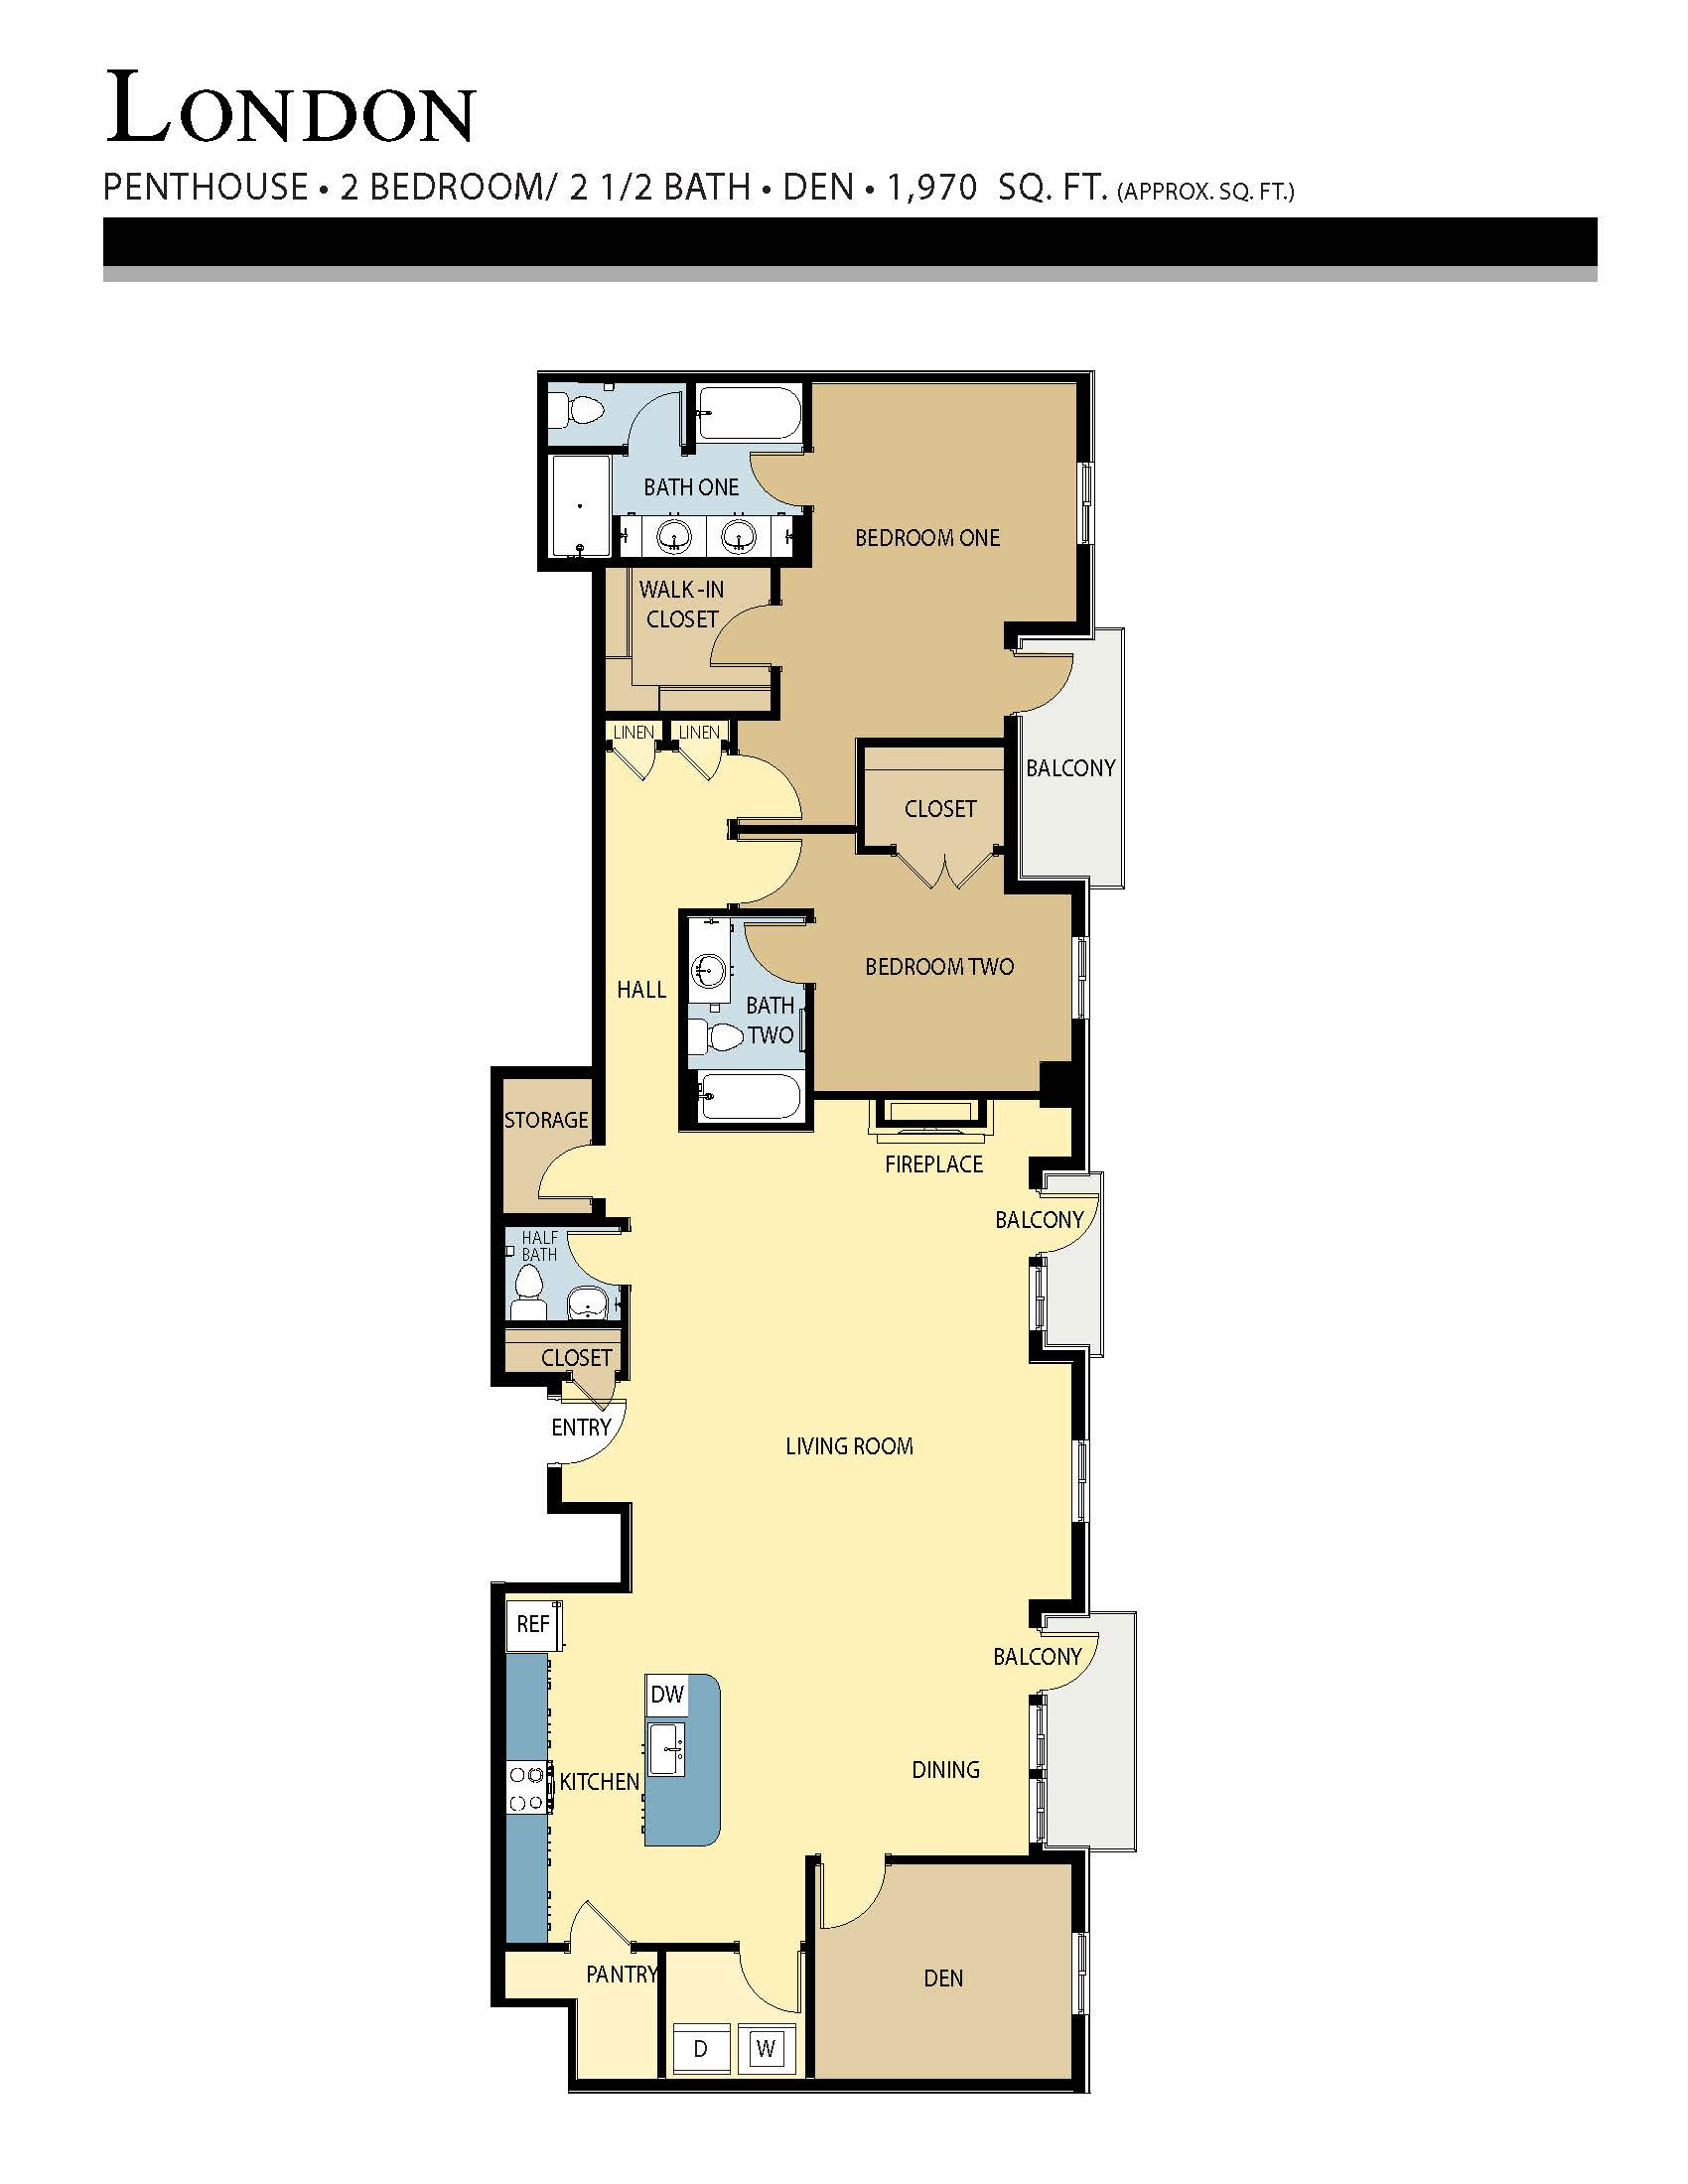 London floor plan - 2 Bed w/ Den / 2.5 Bath (1,970 Sq Ft)